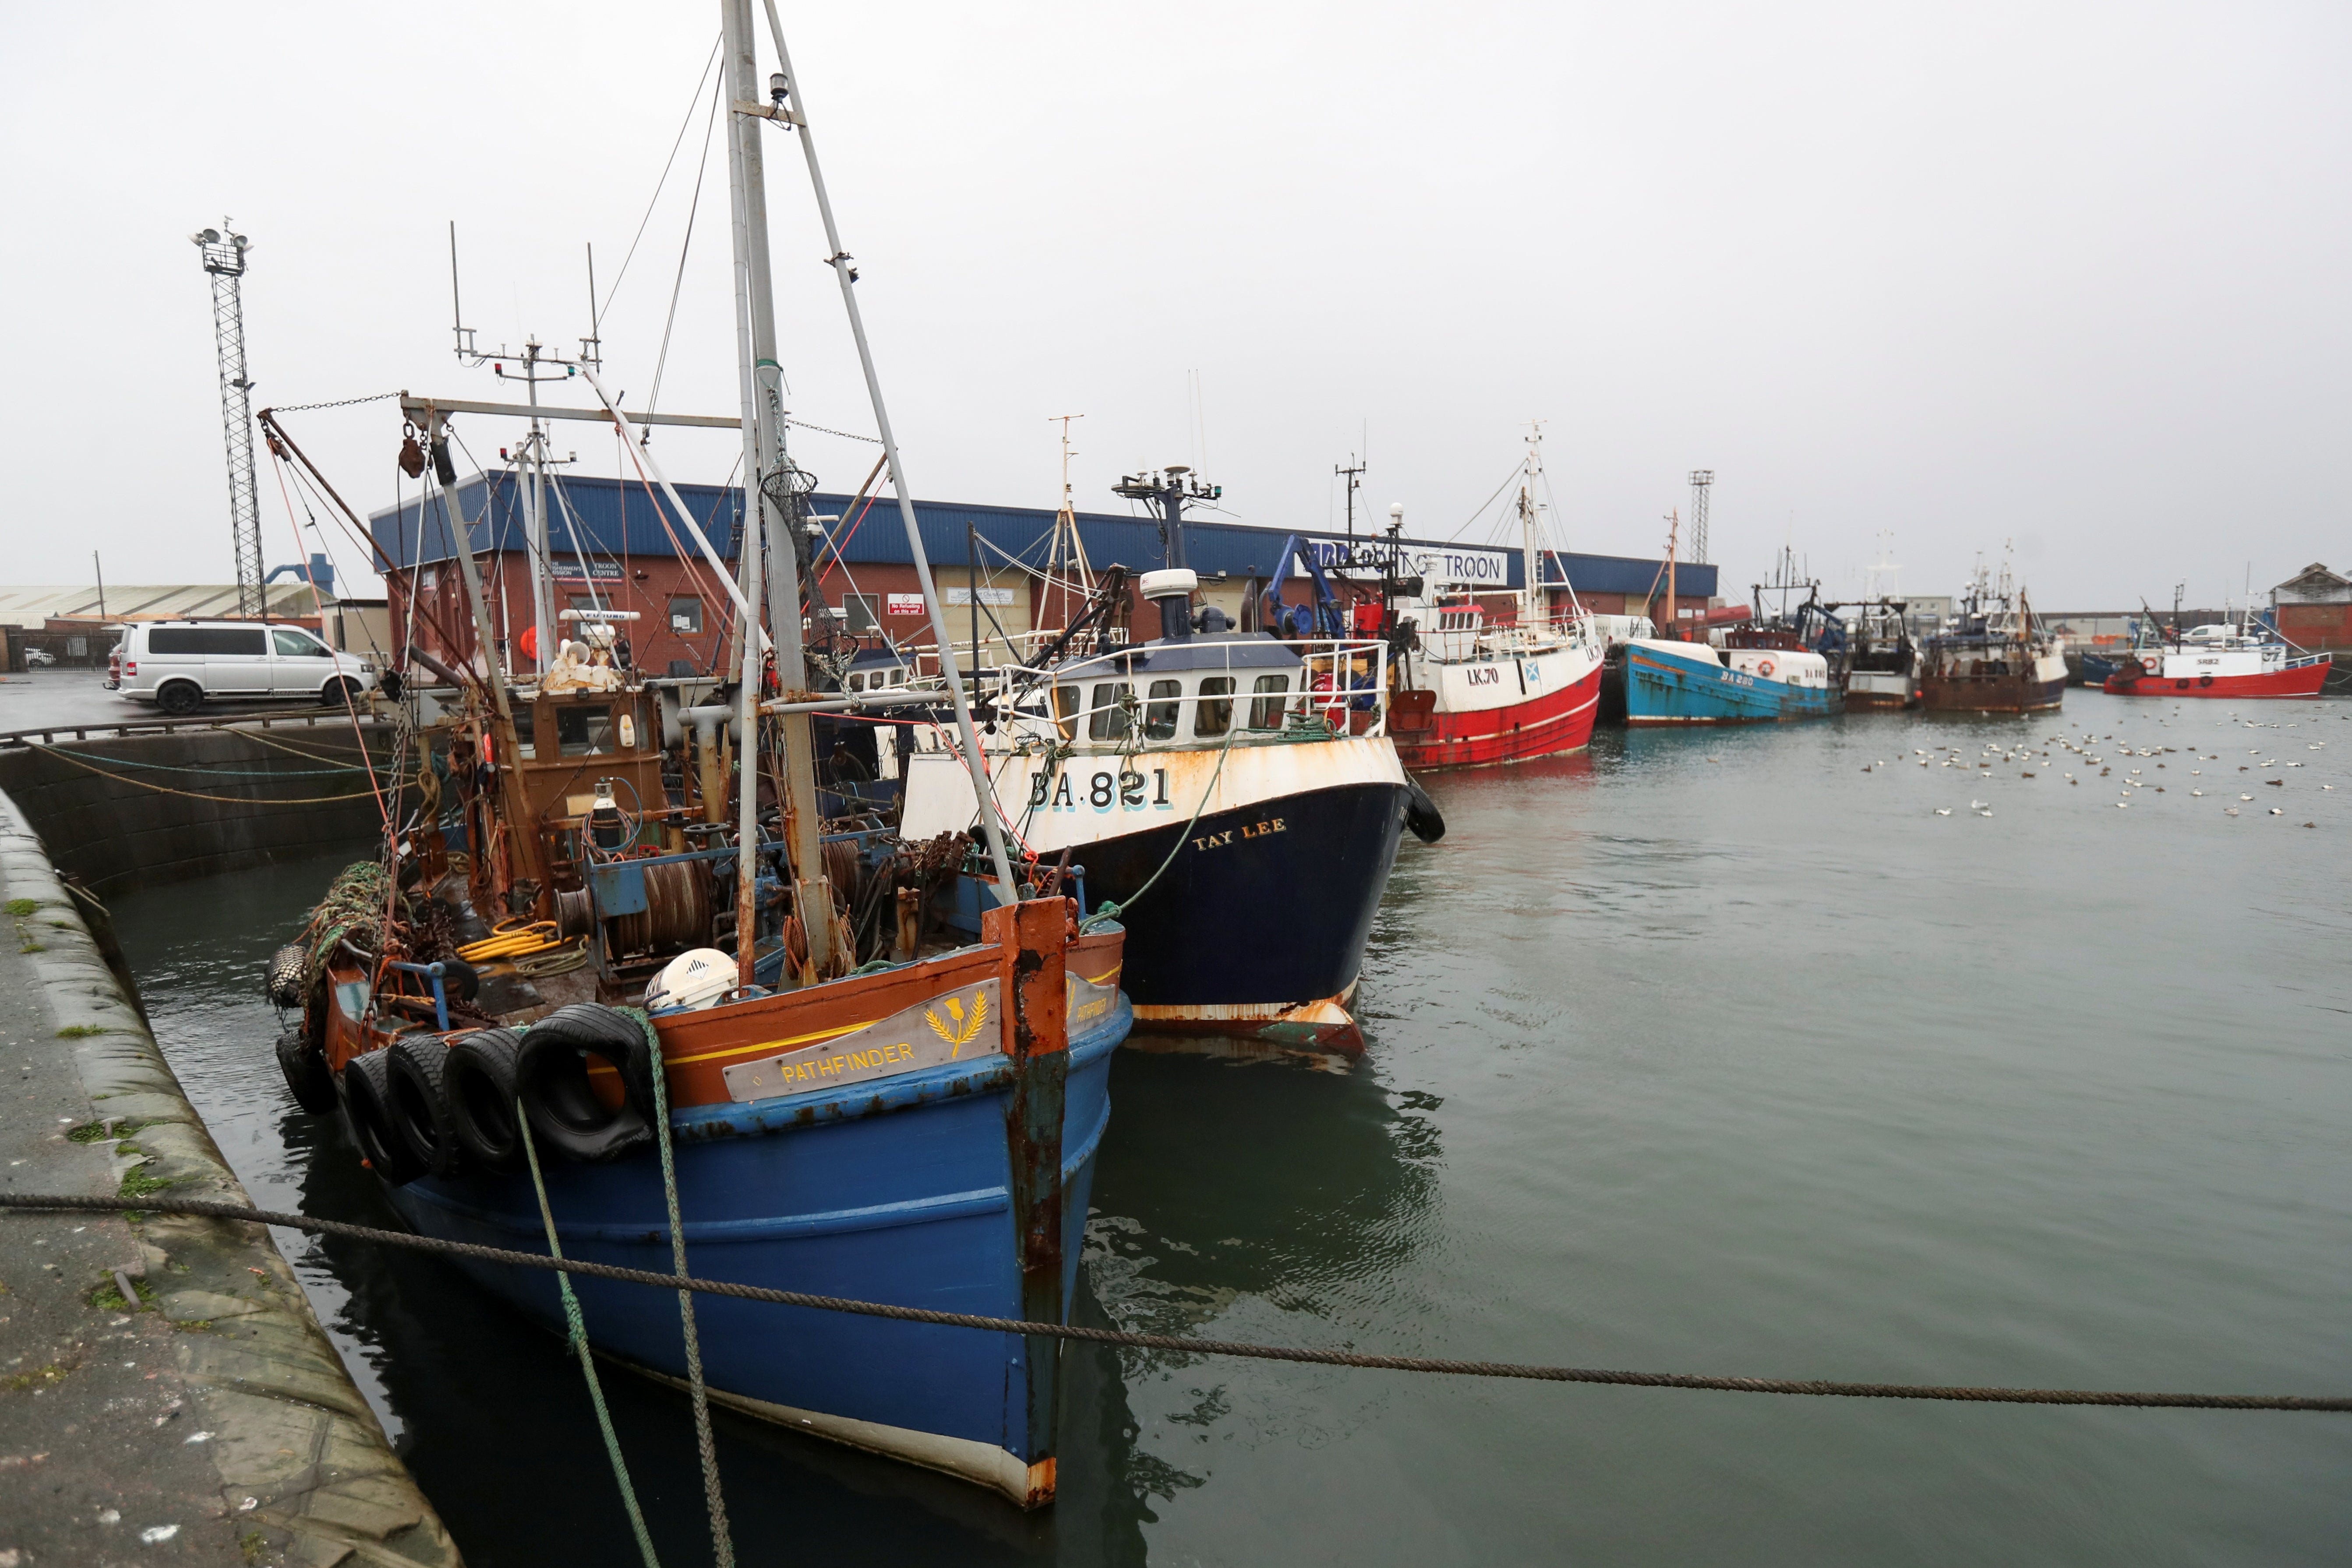 Brexit: Raab claims EU trade agreement is 'great deal' for fishermen, as firms complain of costs and delays